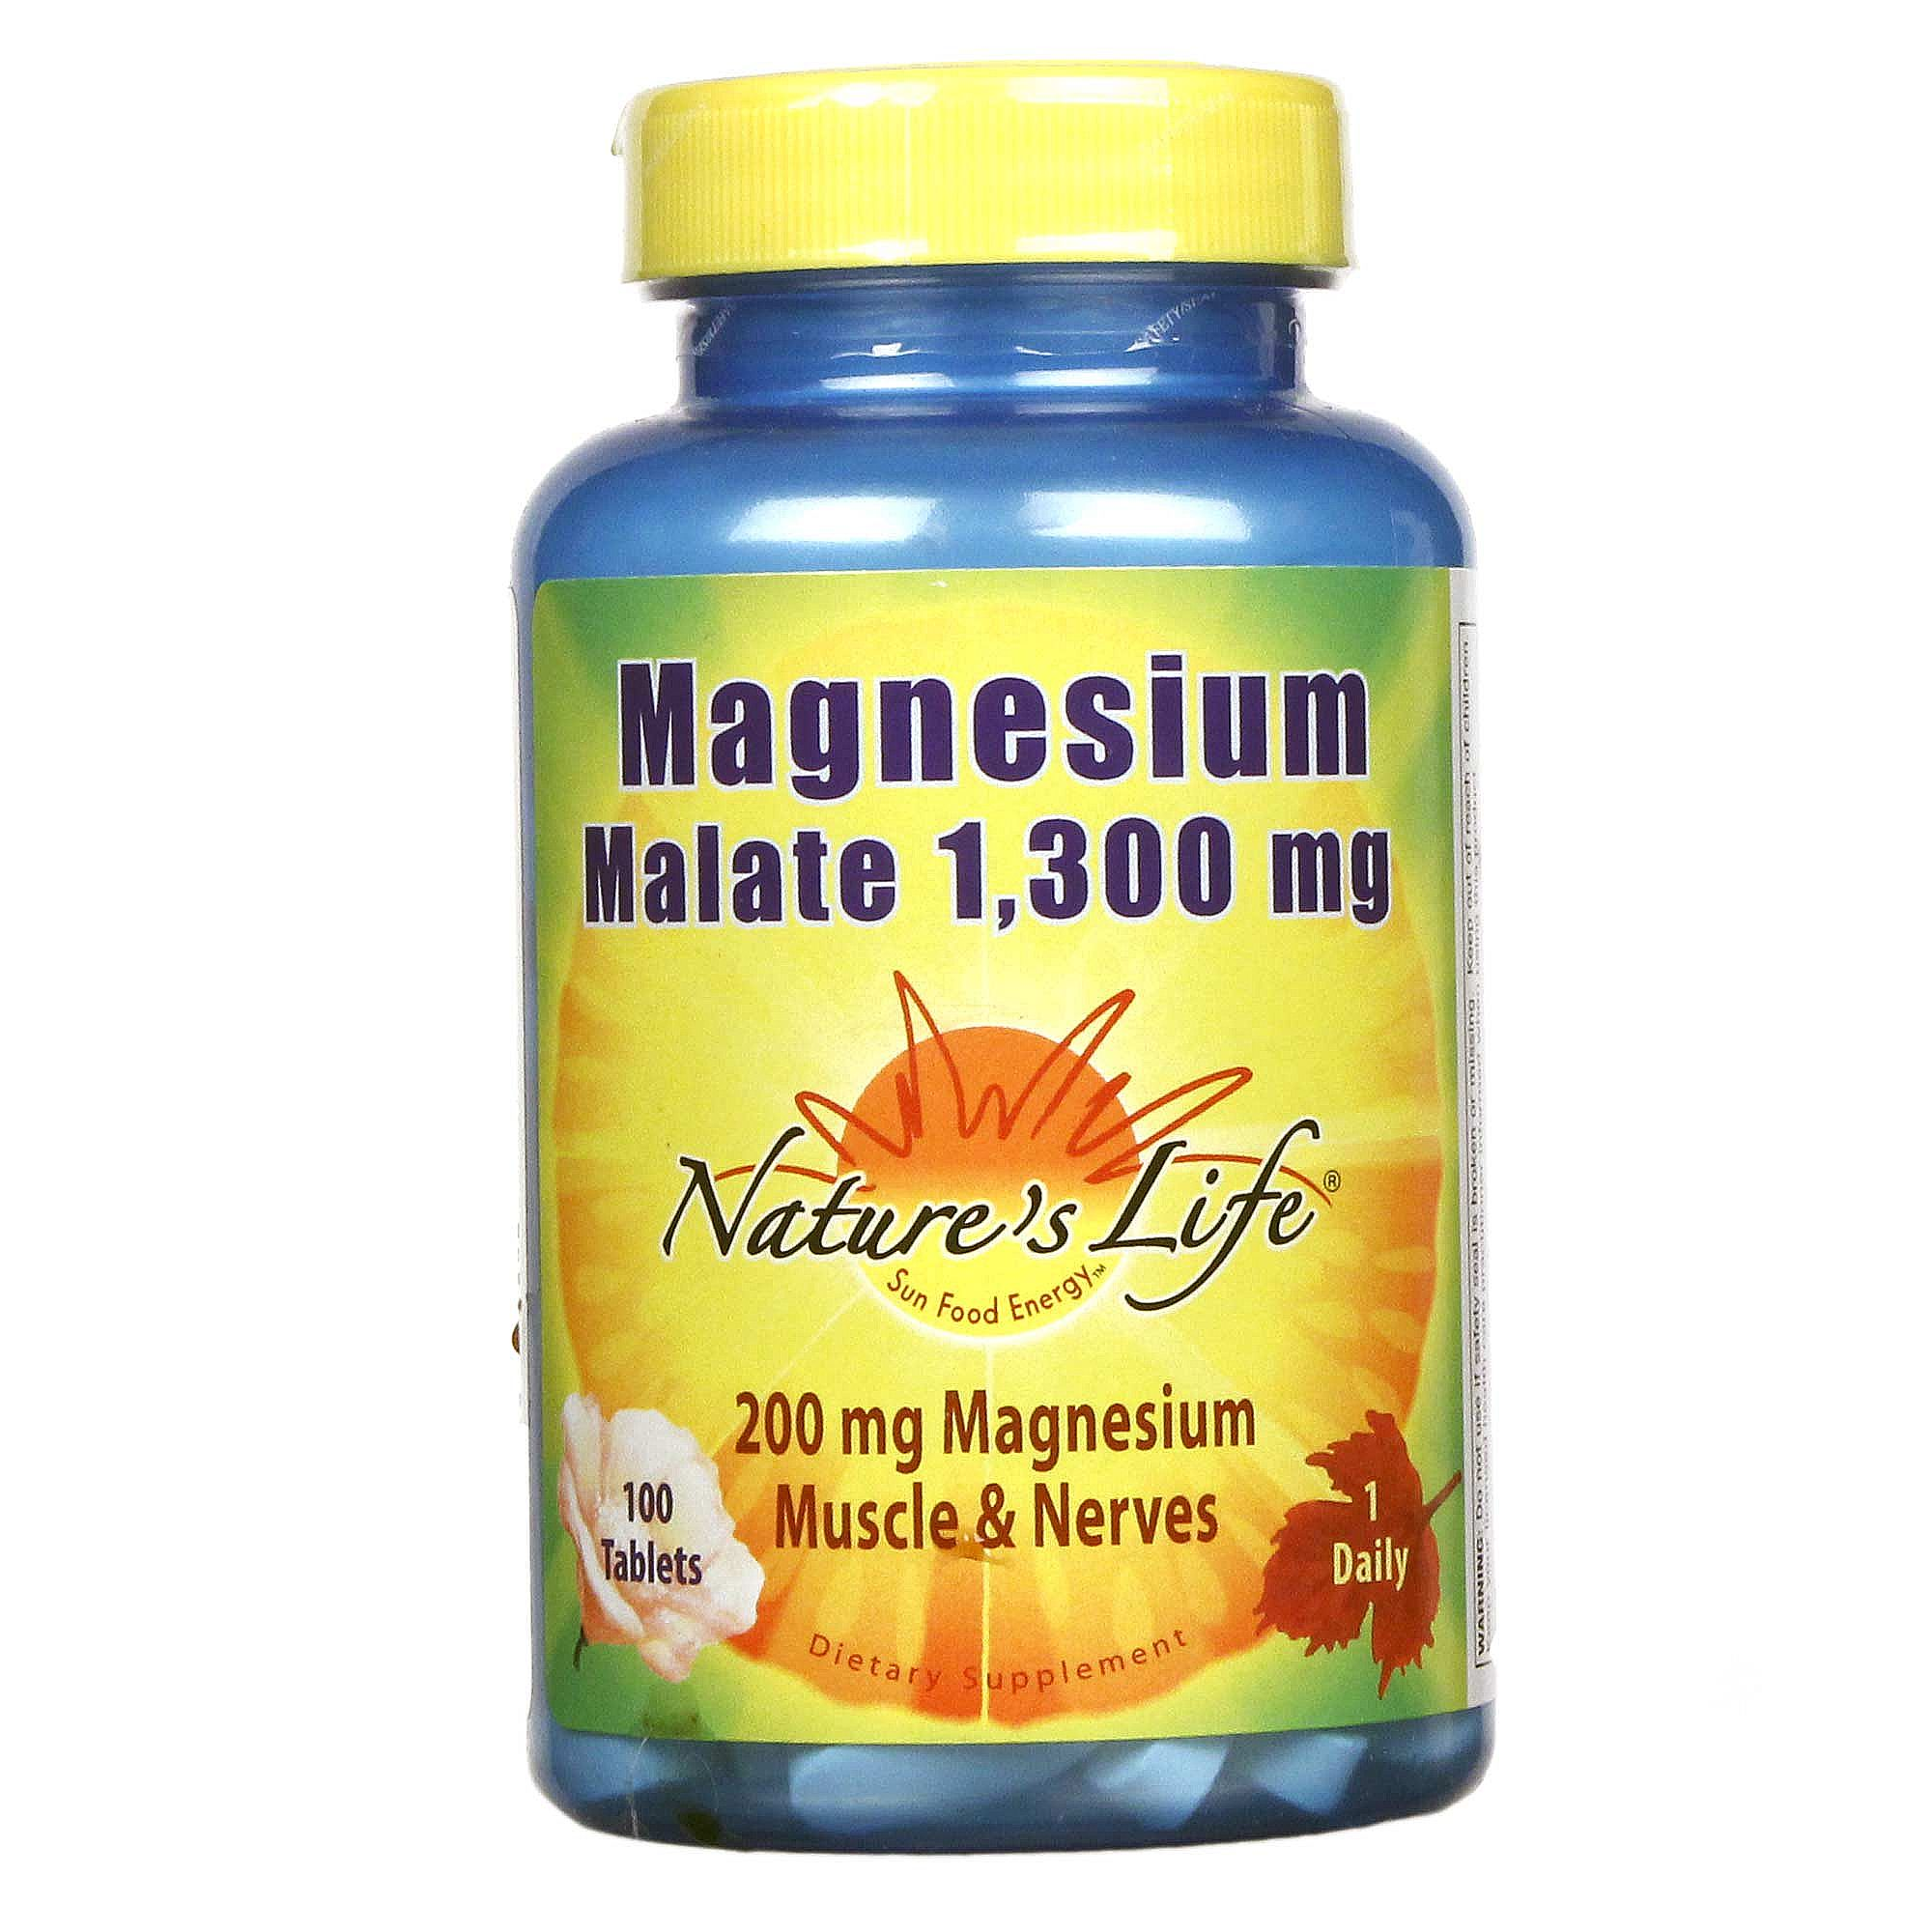 Natures Life Magnesium Malate 200 Mg 100 Tablets Healthy Care Omega 369 Caps Hover To Zoom